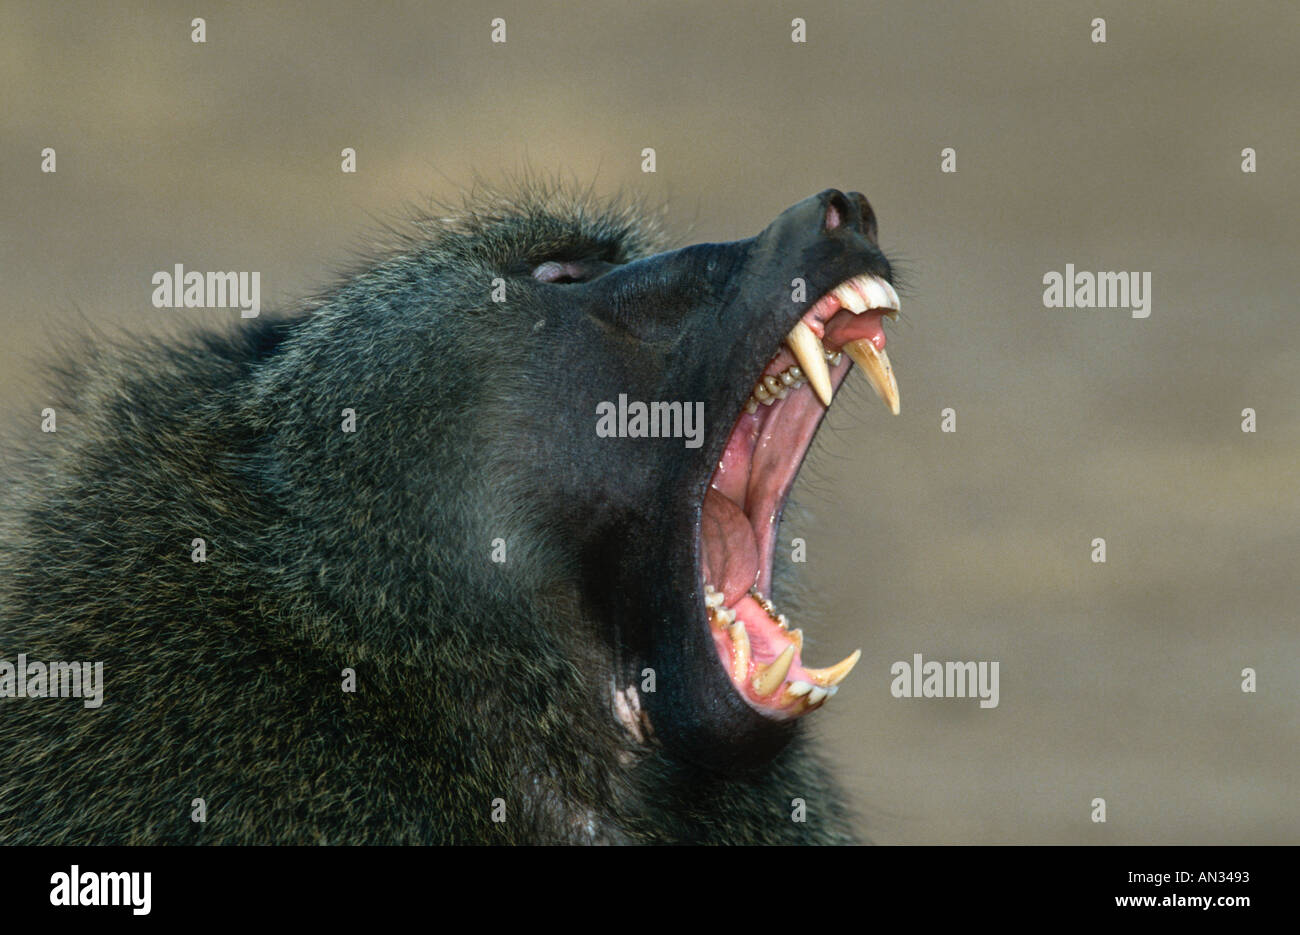 Chacma baboon Papio ursinus Male shows teeth in aggressive posture Southern Africa - Stock Image